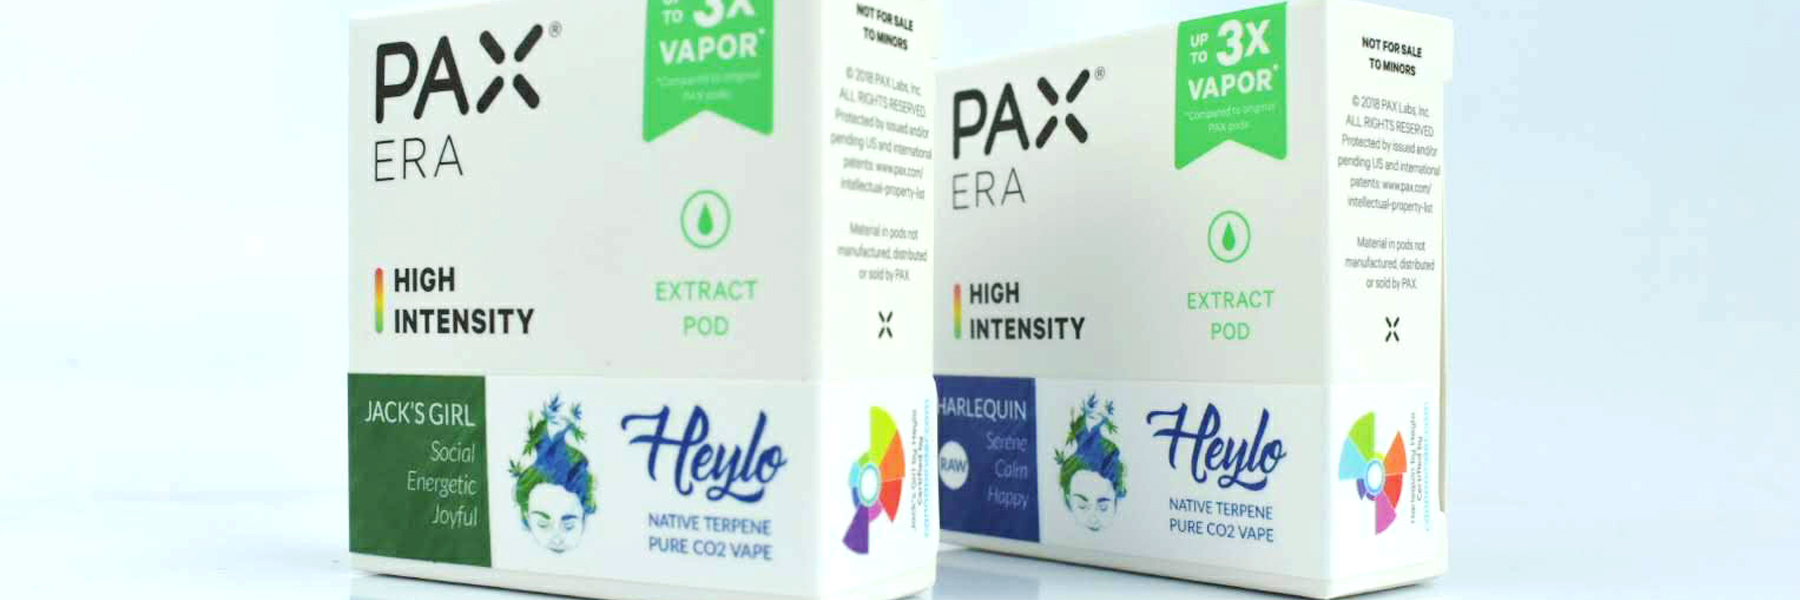 Ask your budtender for Pax Pods by Heylo Cannabis Extracts...